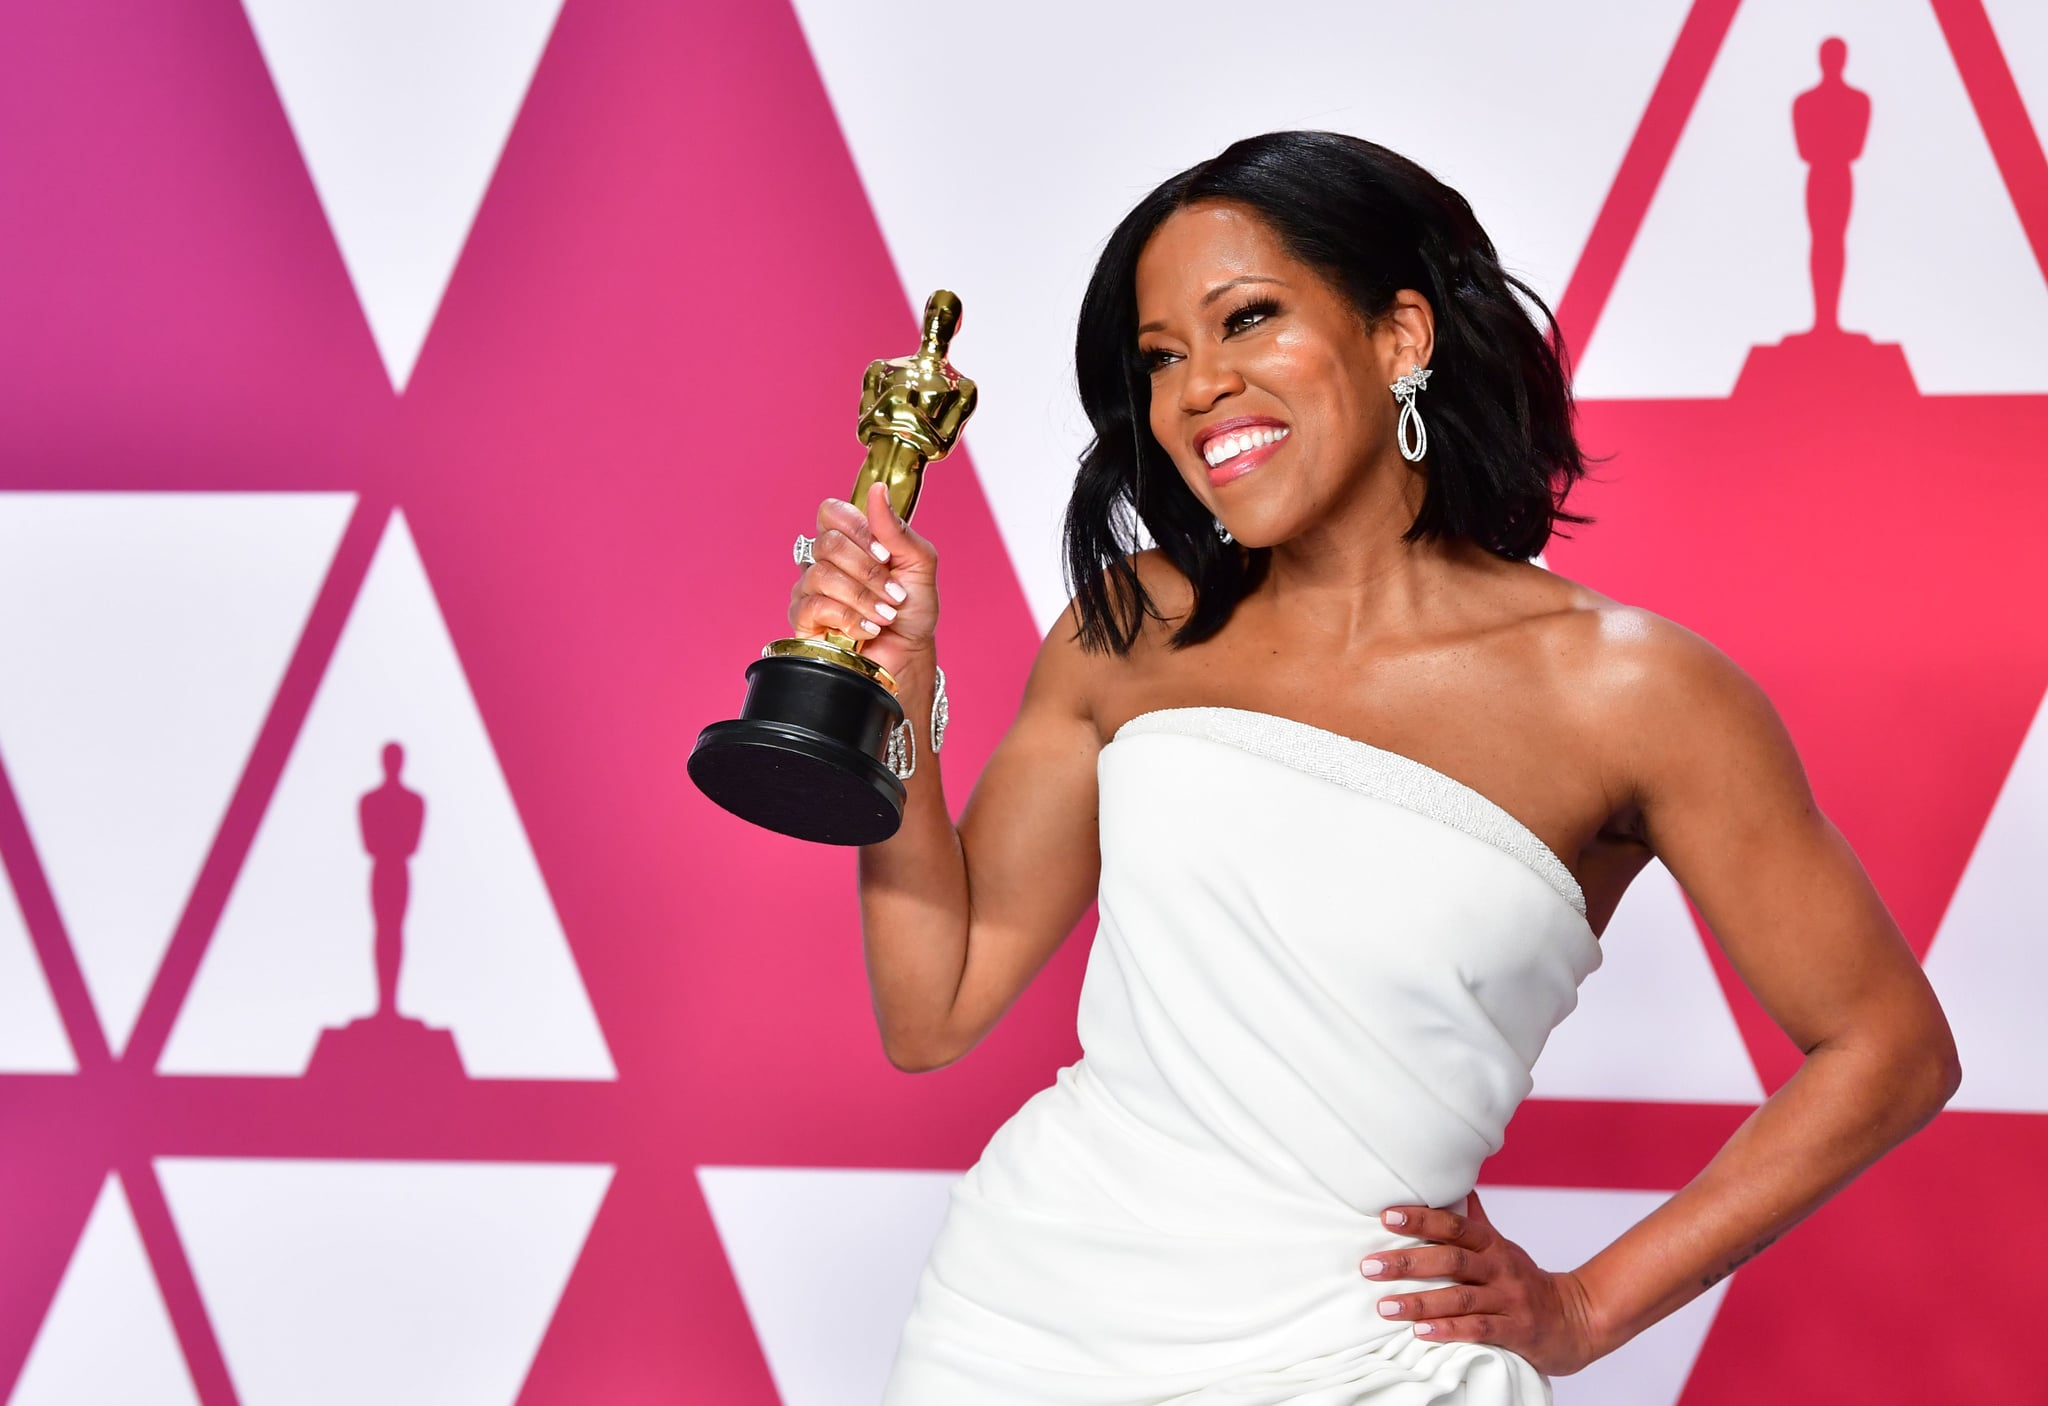 Best Supporting Actress winner for